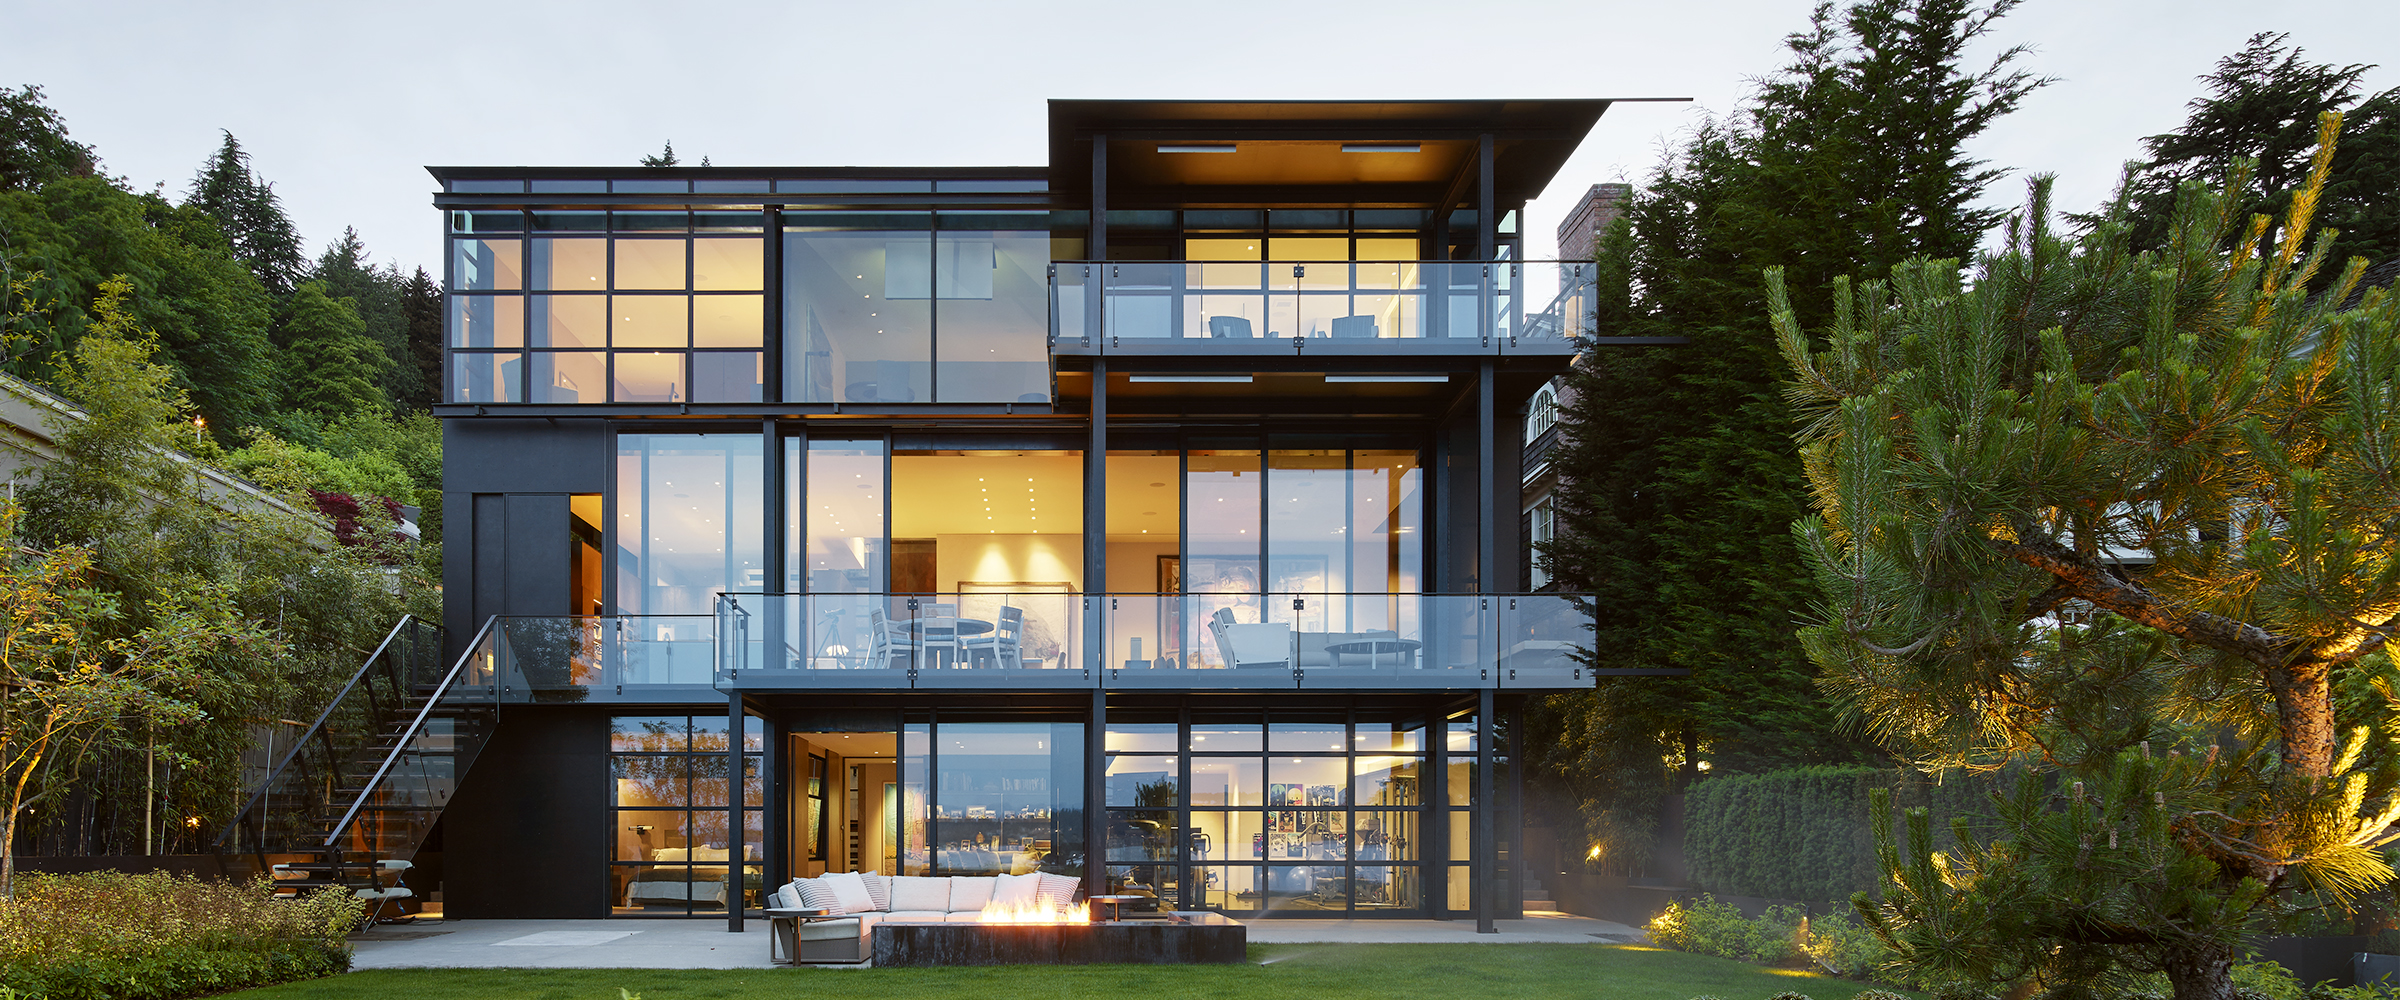 Private Residence<br><gridTitle>Olson Kundig</gridTitle>